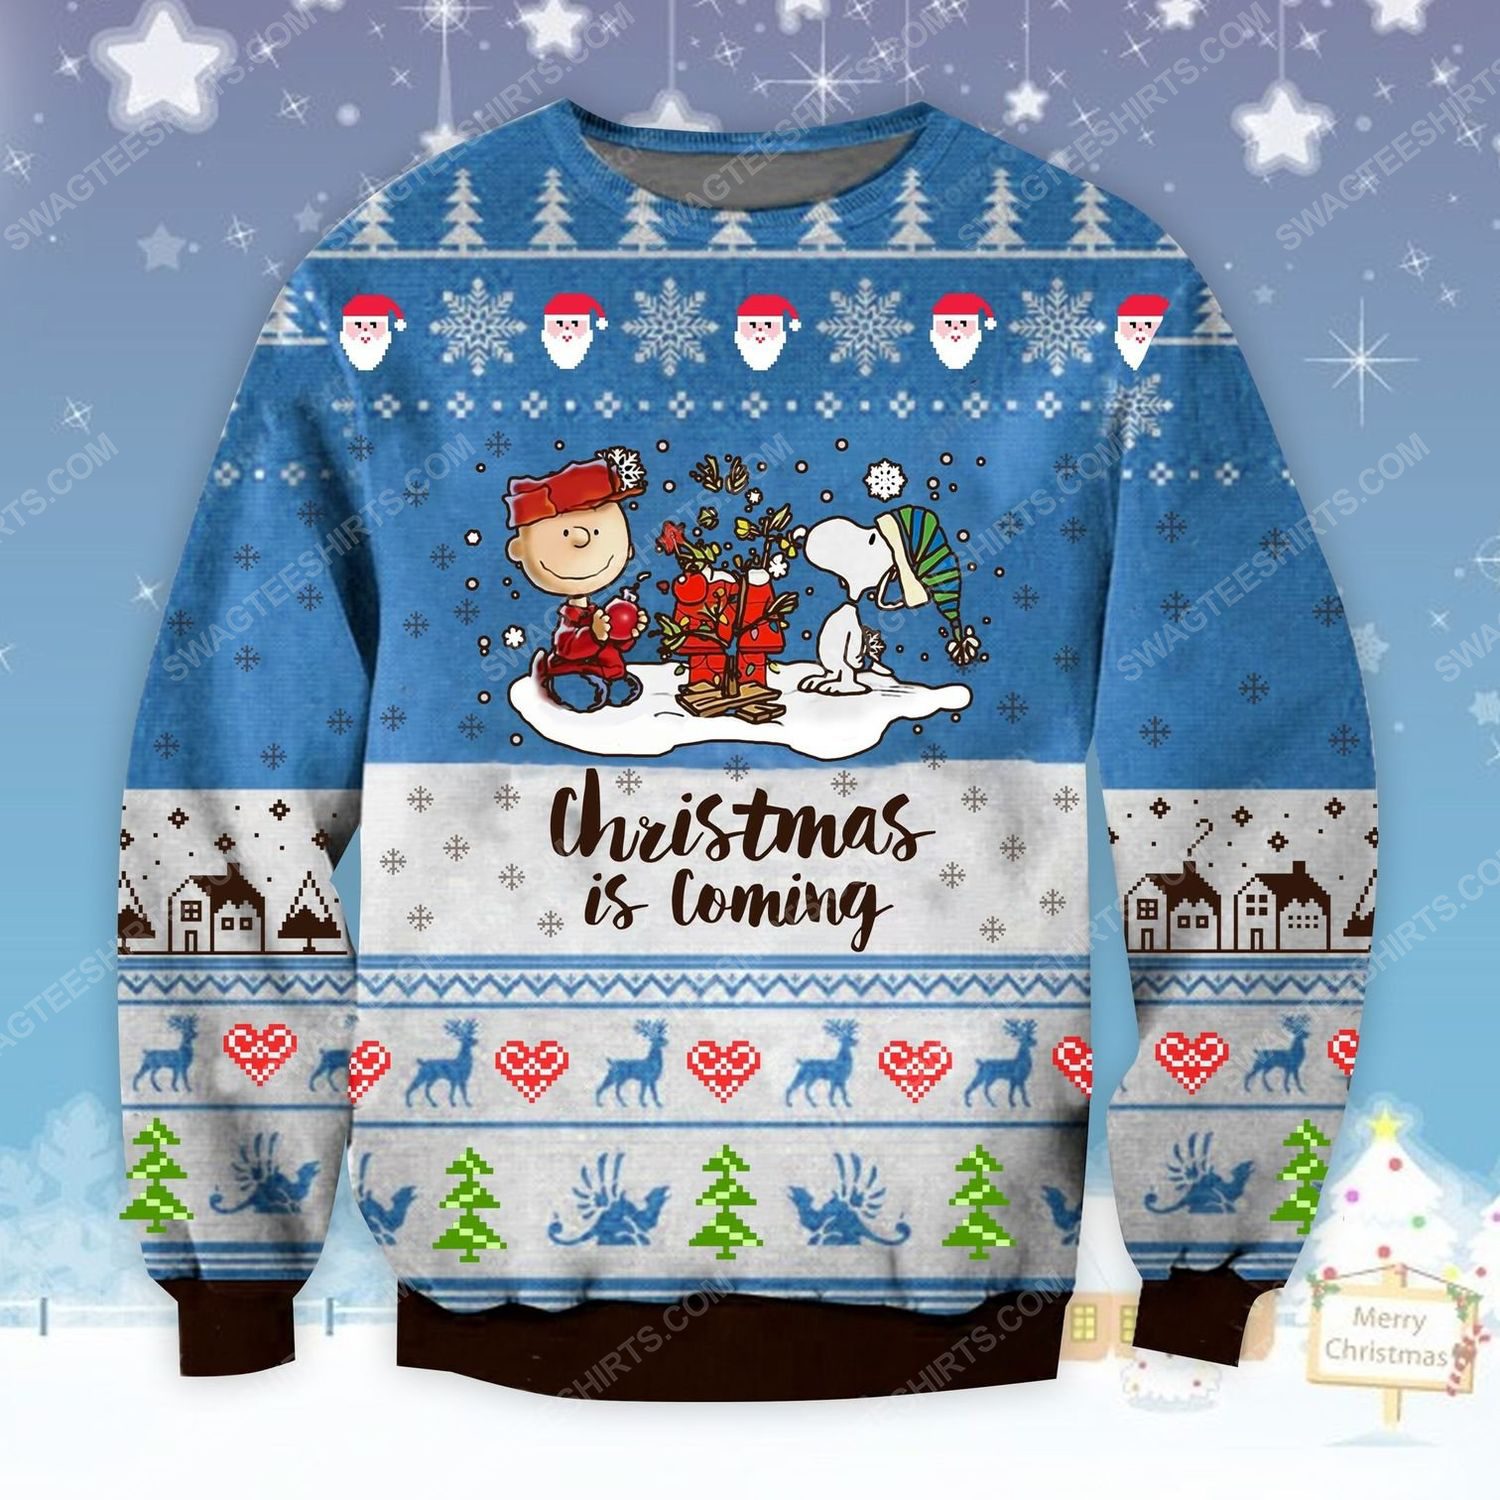 Charlie brown and snoopy christmas is coming ugly christmas sweater - Copy